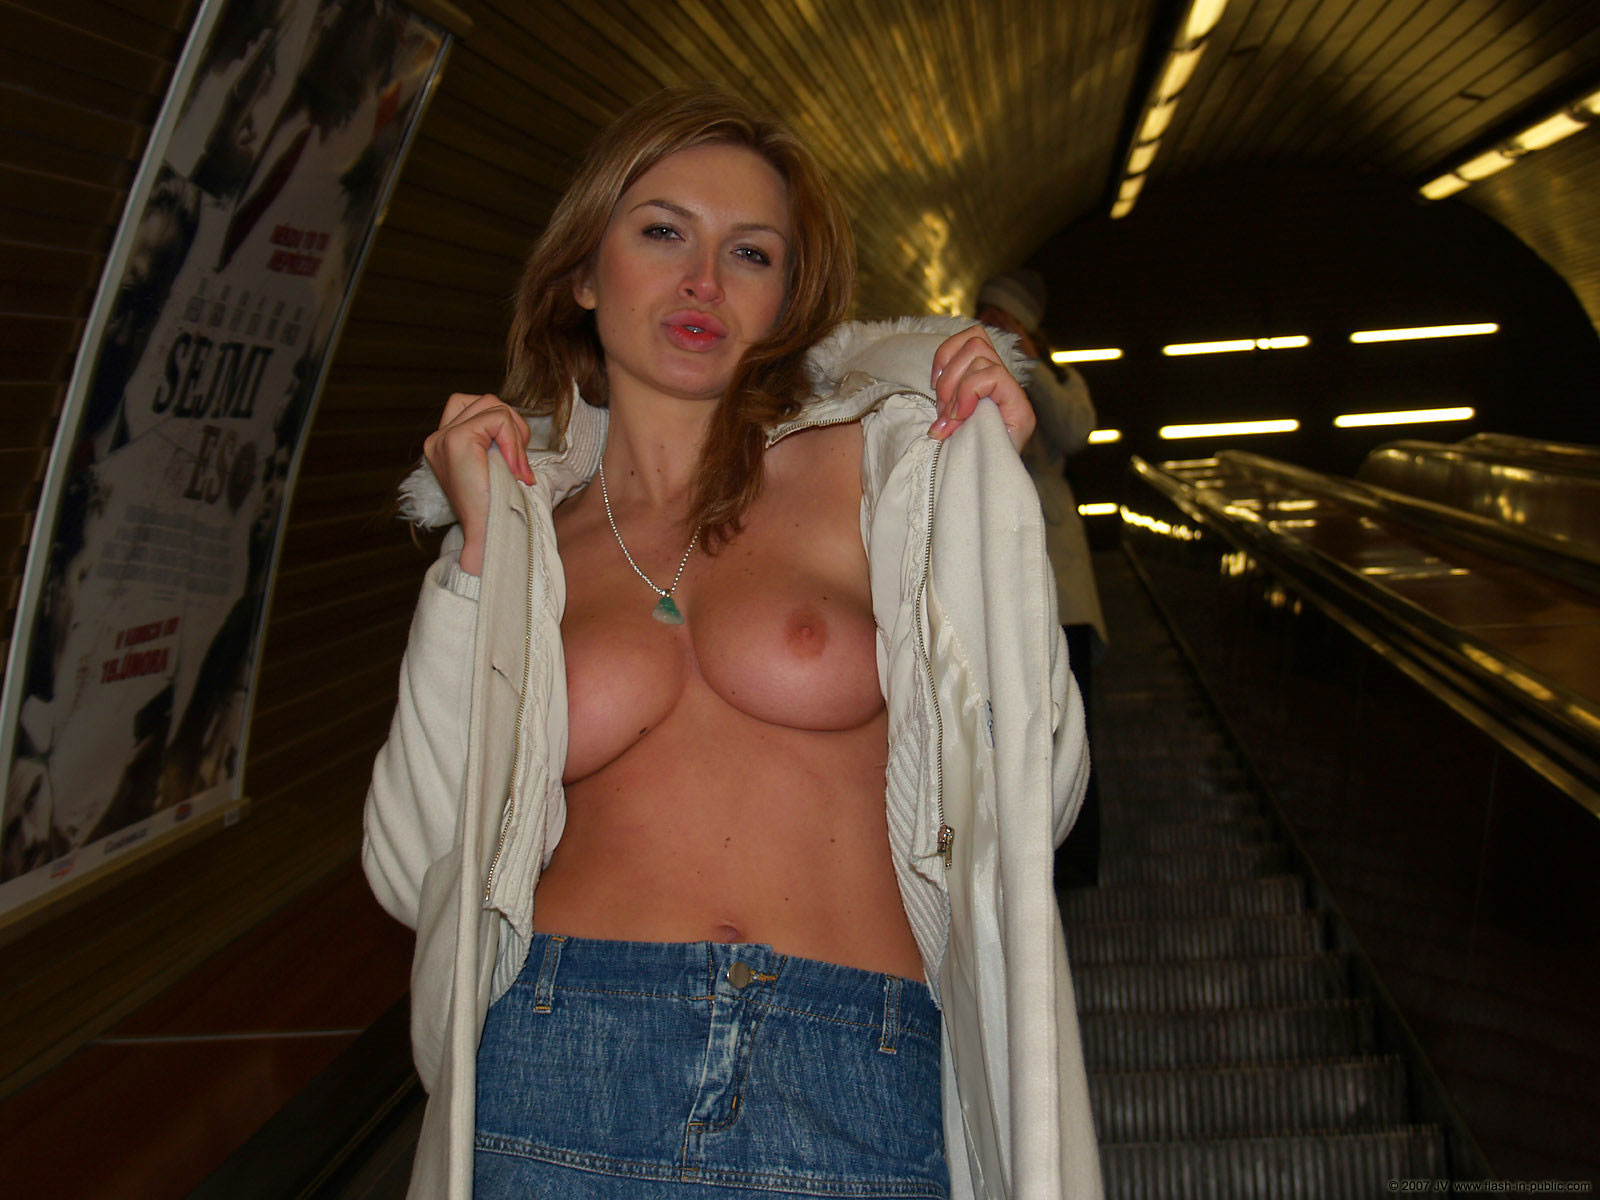 alena-n-jeans-skirt-nude-in-prague-flash-in-public-60